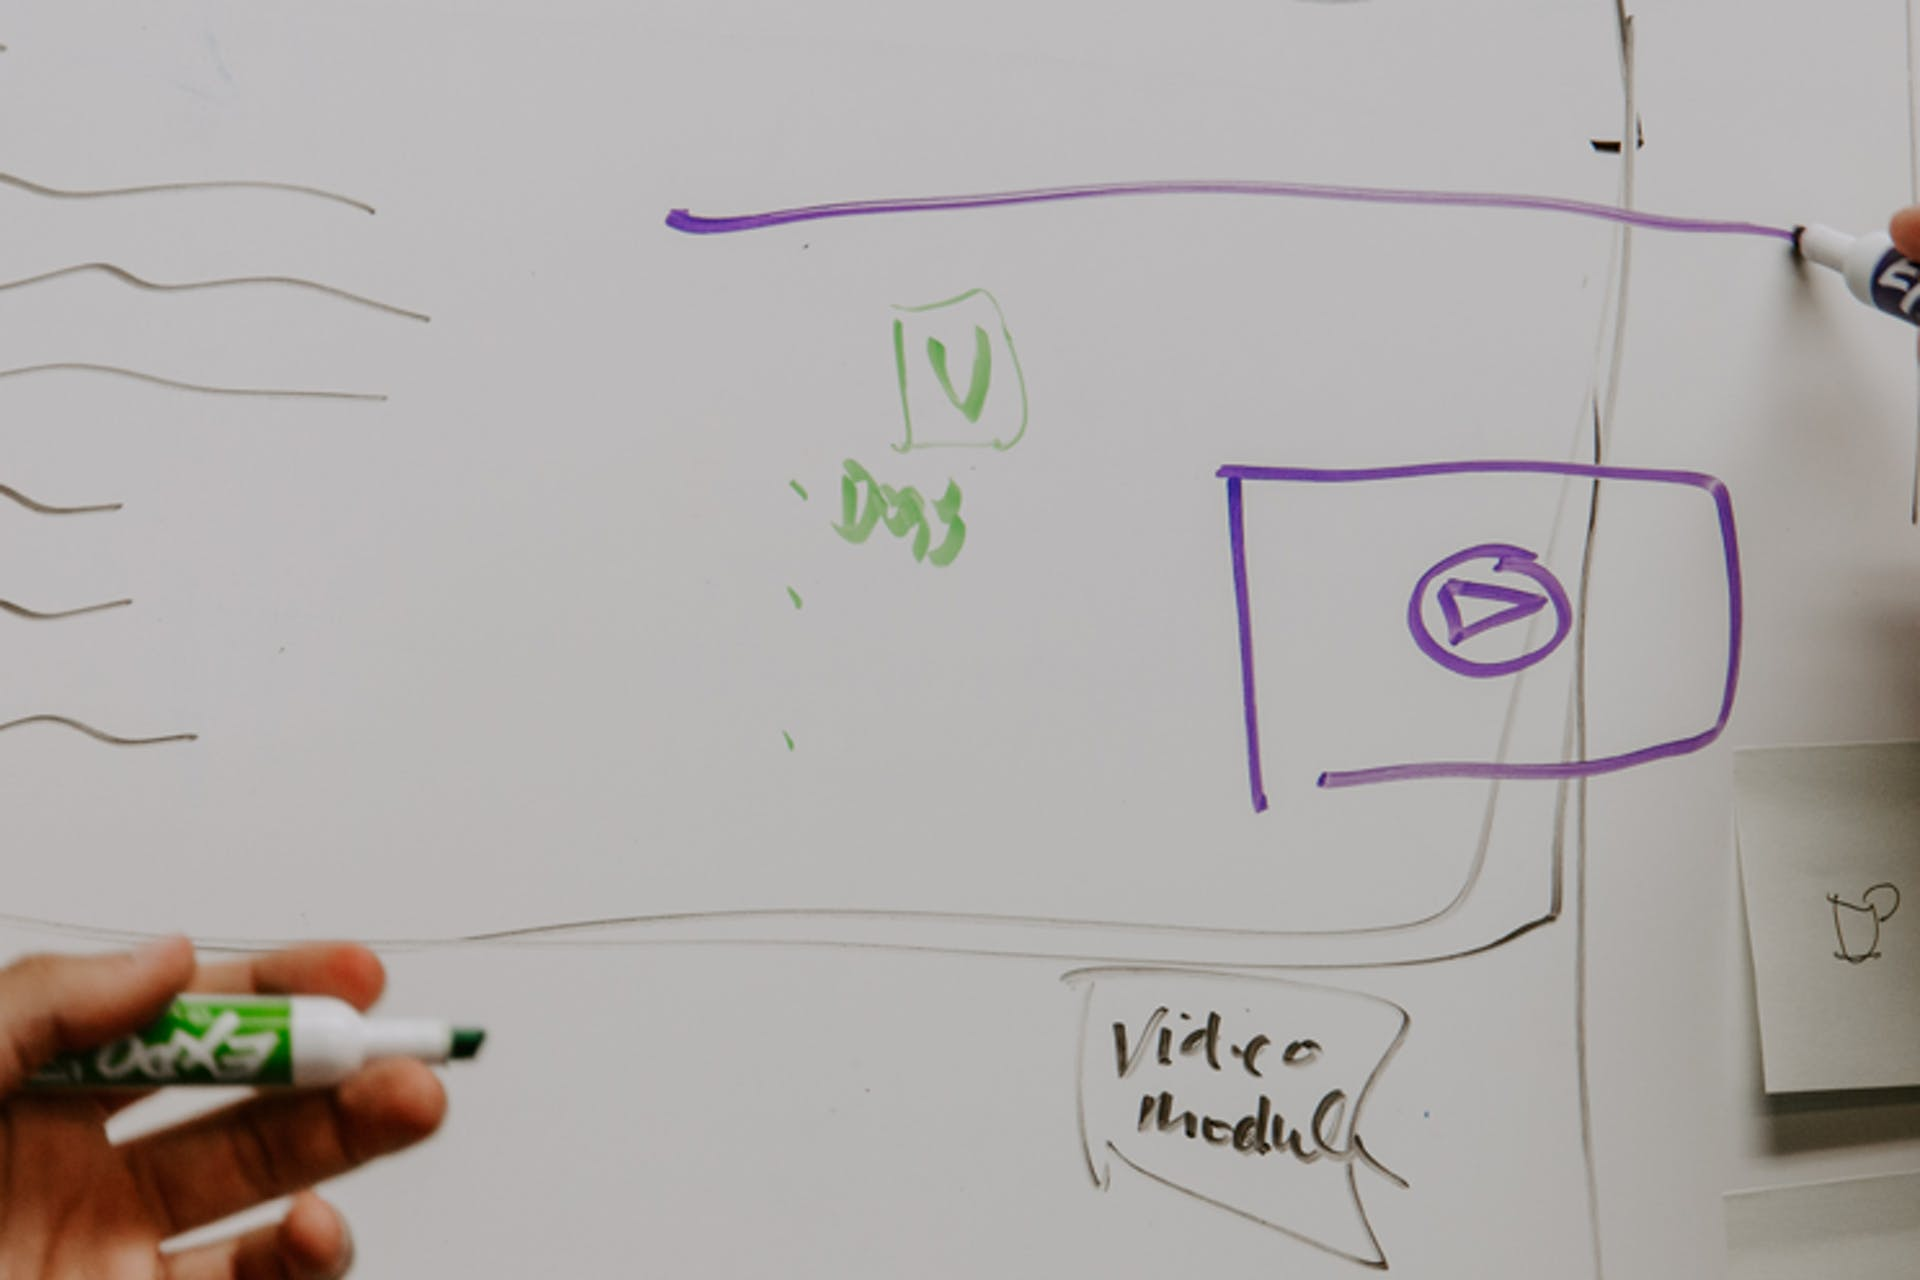 two people writing on a whiteboard with purple and green markers